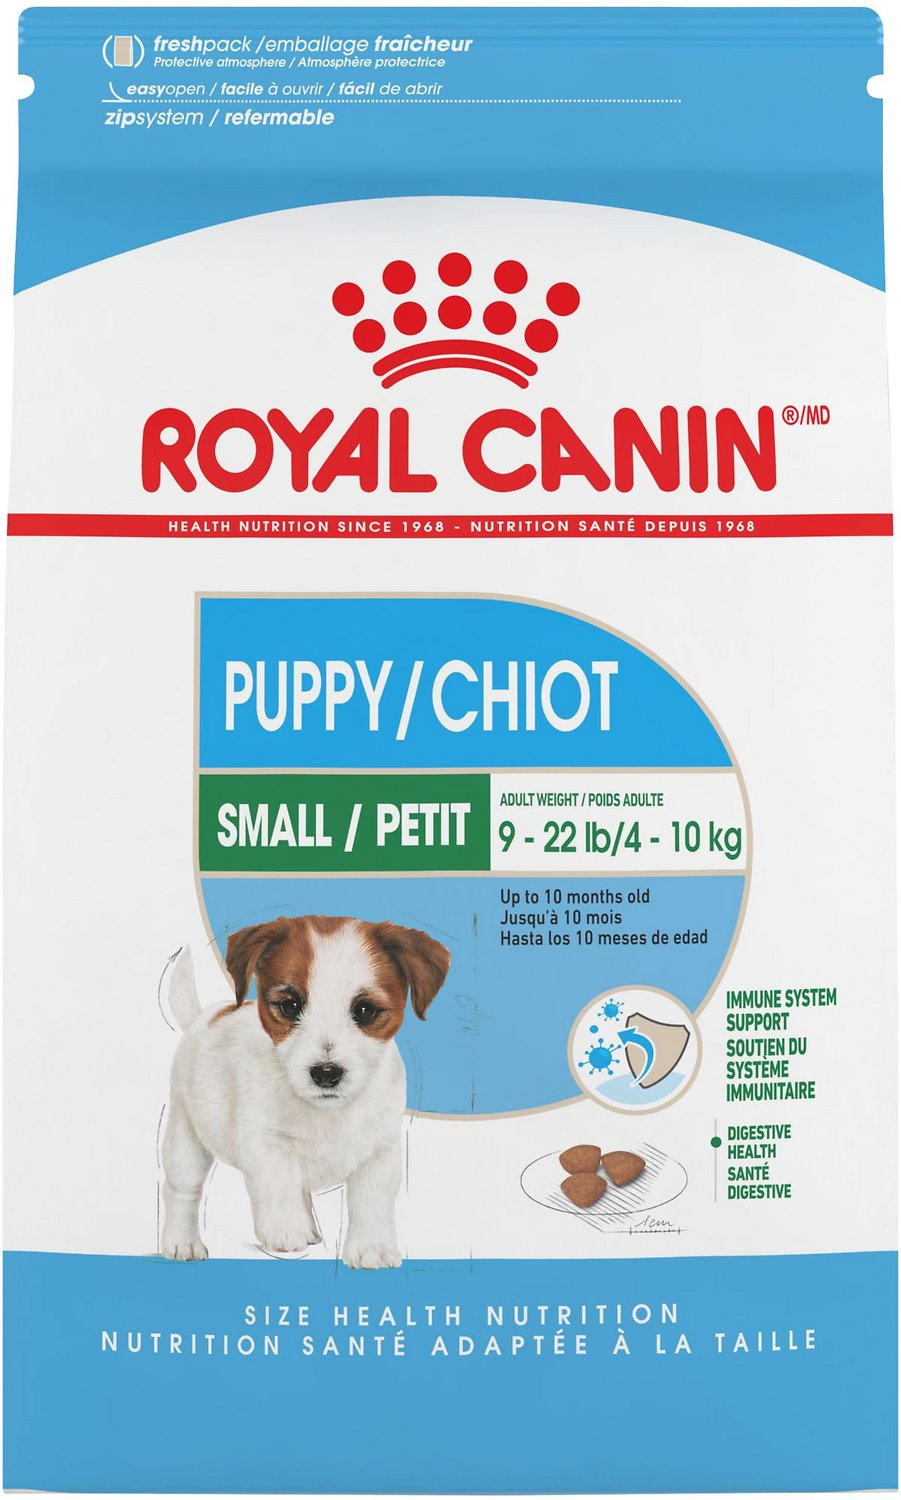 royal canin puppy mini  Royal Canin Small Puppy Dry Dog Food, 2.5-lb bag -